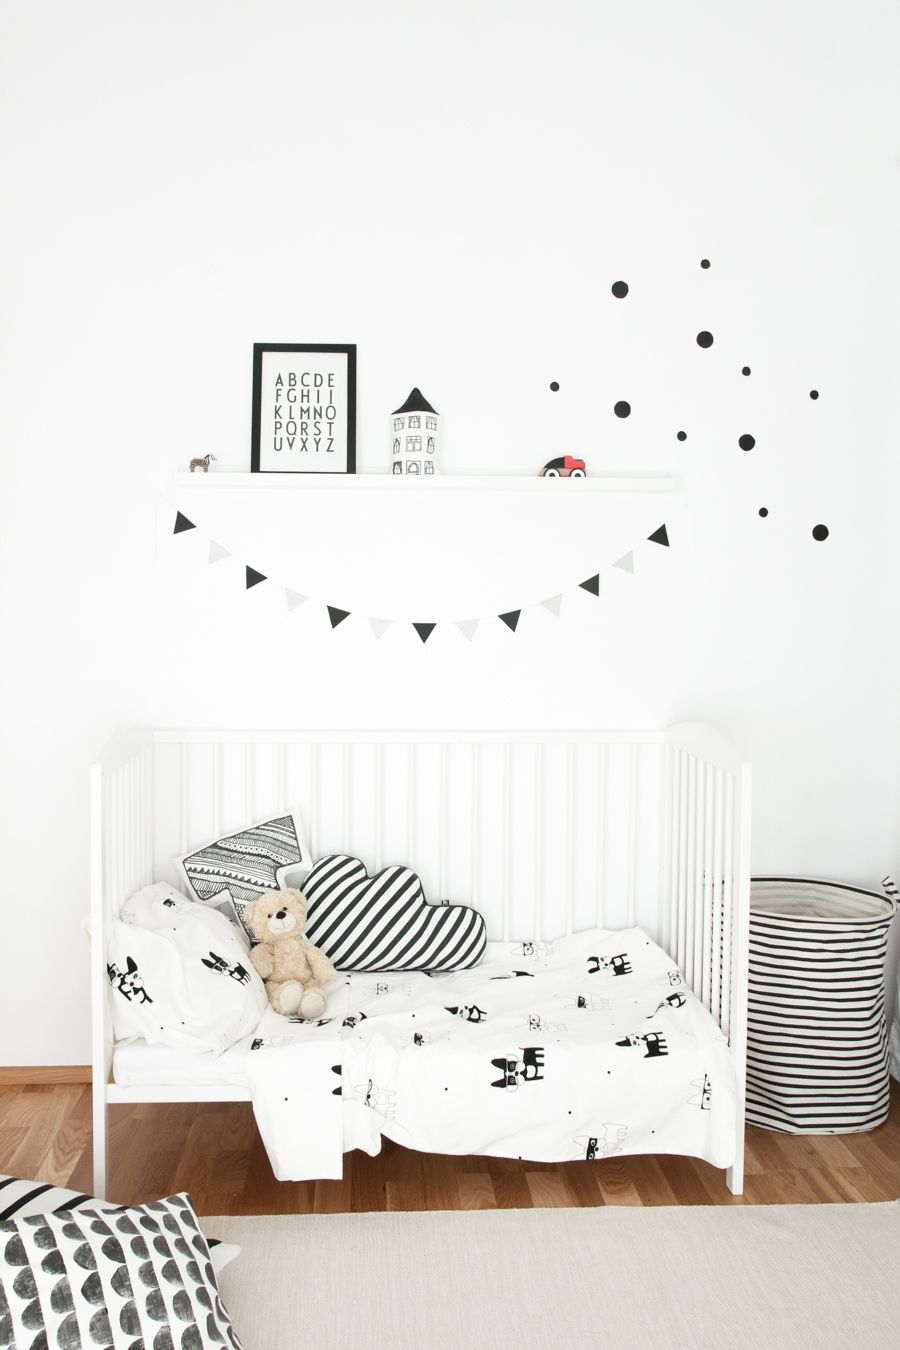 Baby boy room decor stickers - Monochrome Scandinavian Style Kids Room